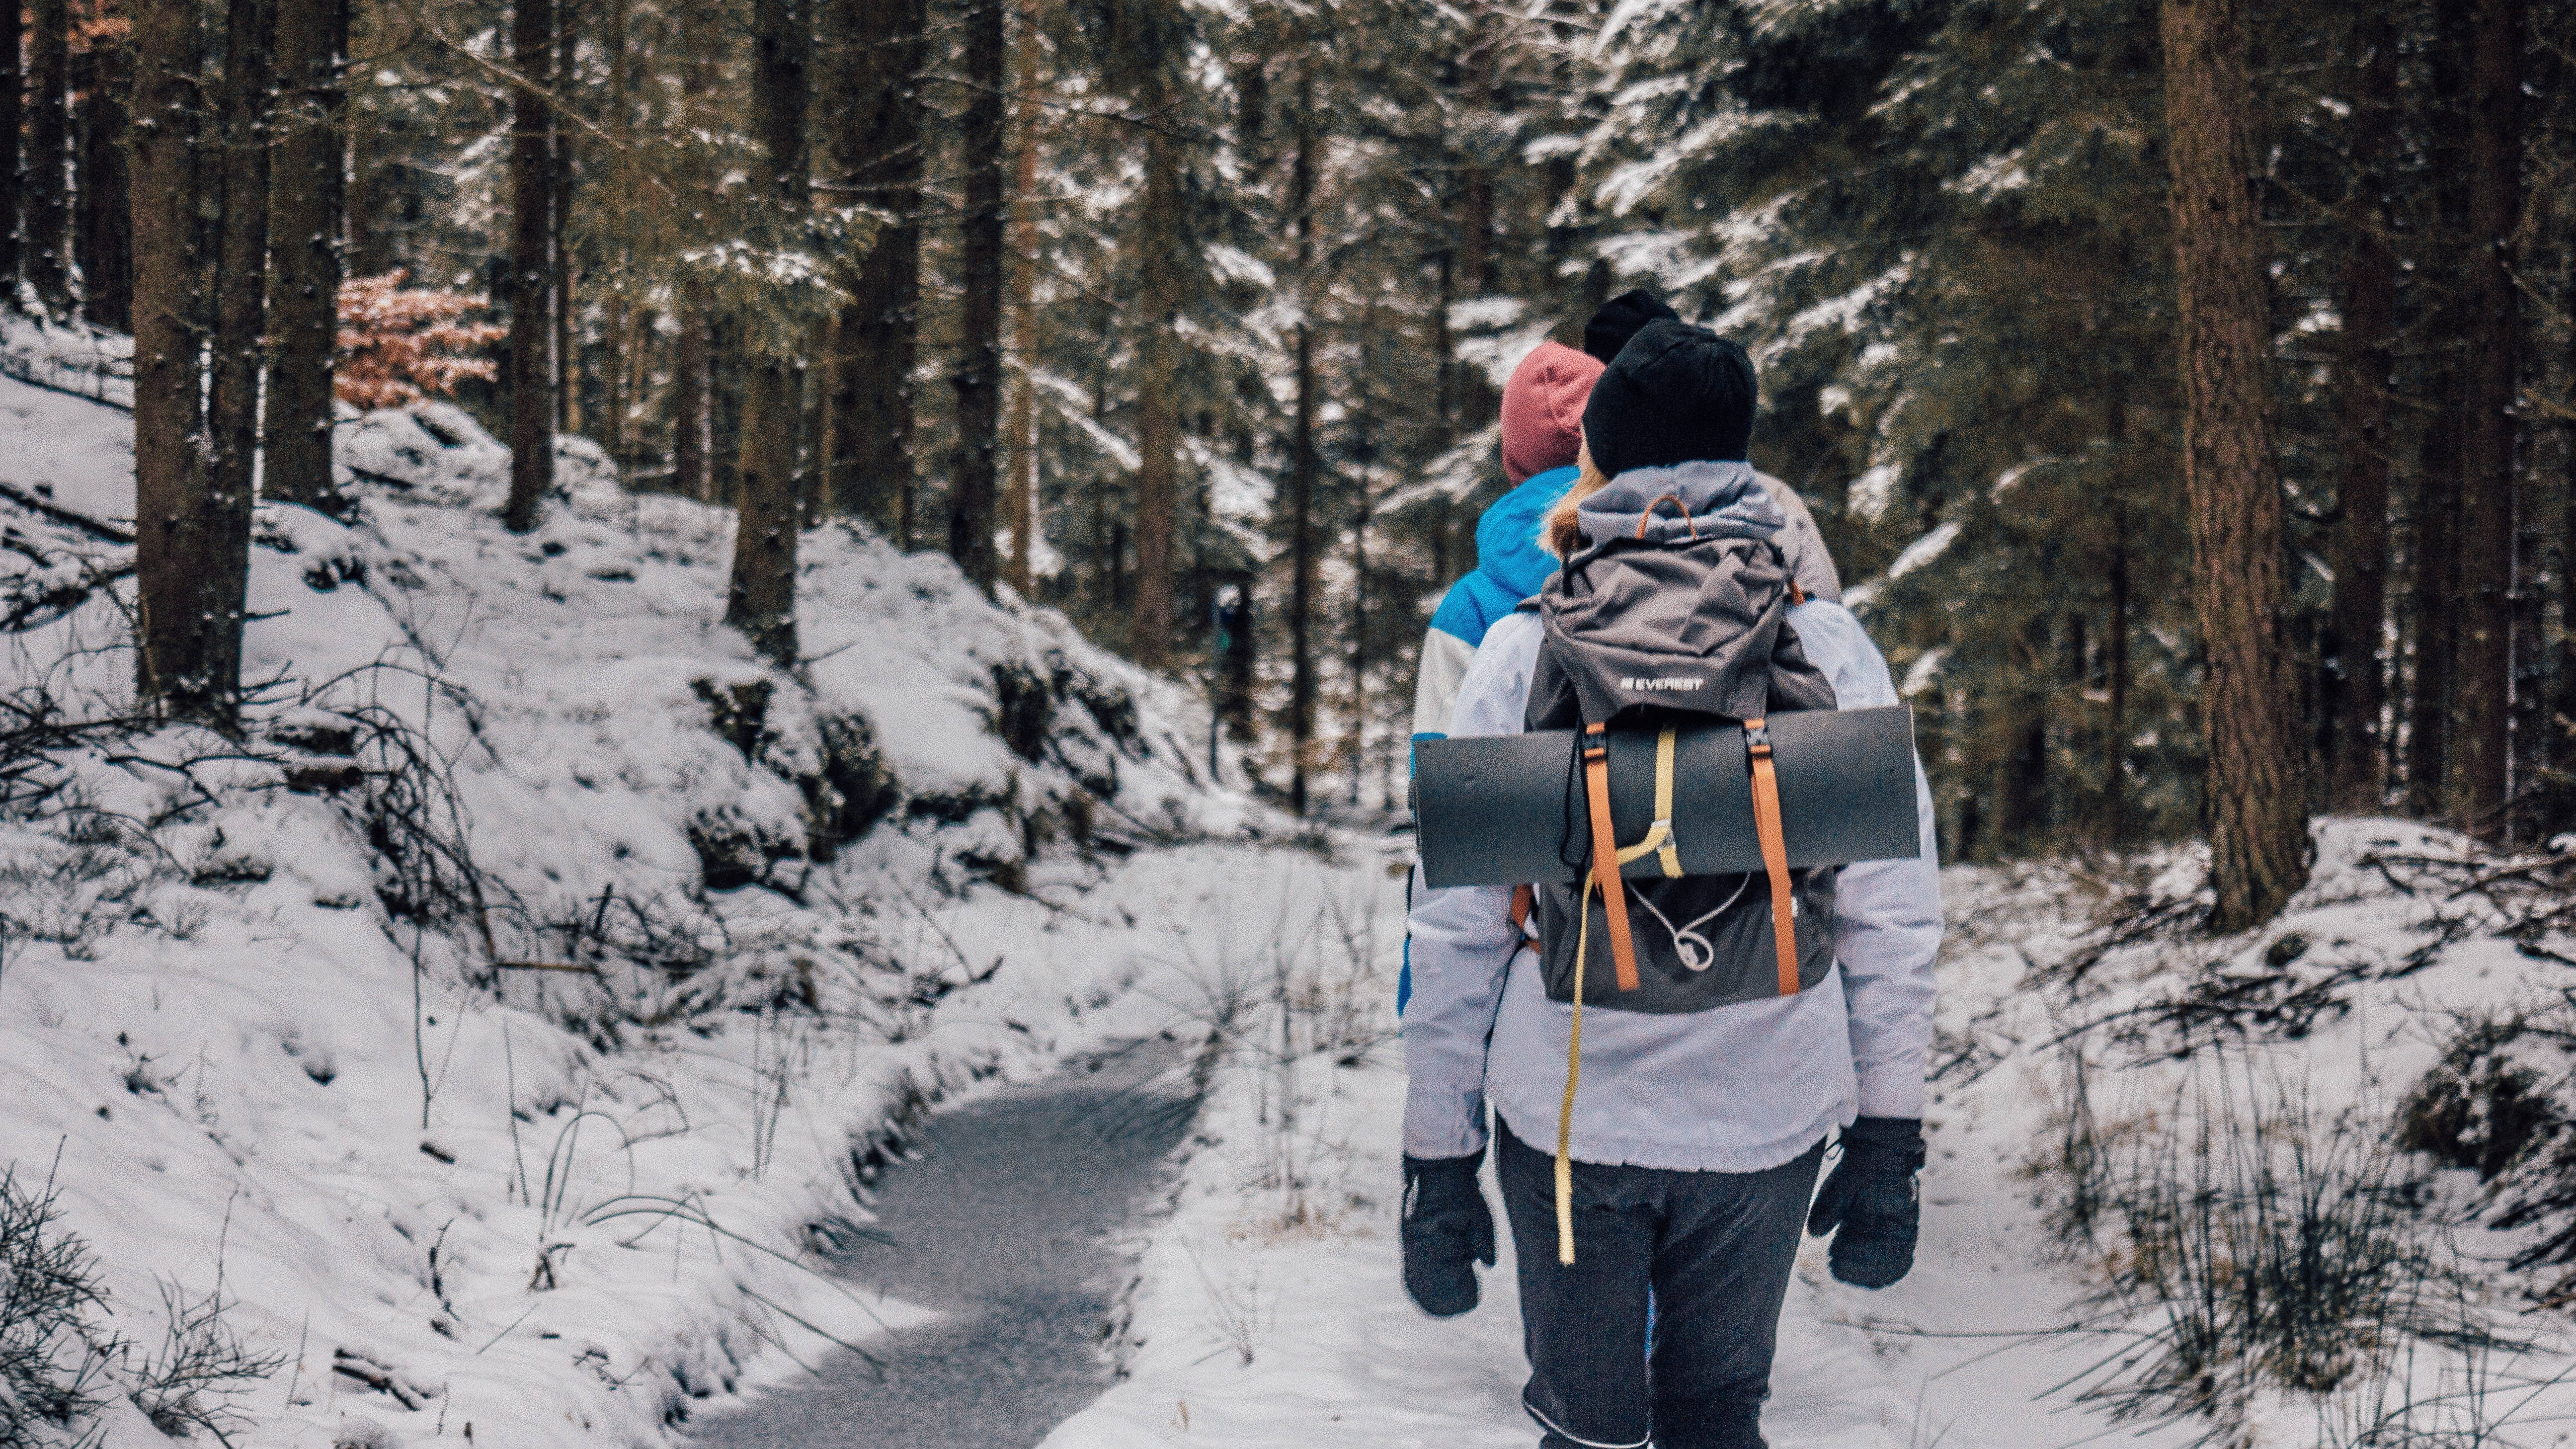 Two people walking in woods with snow photo